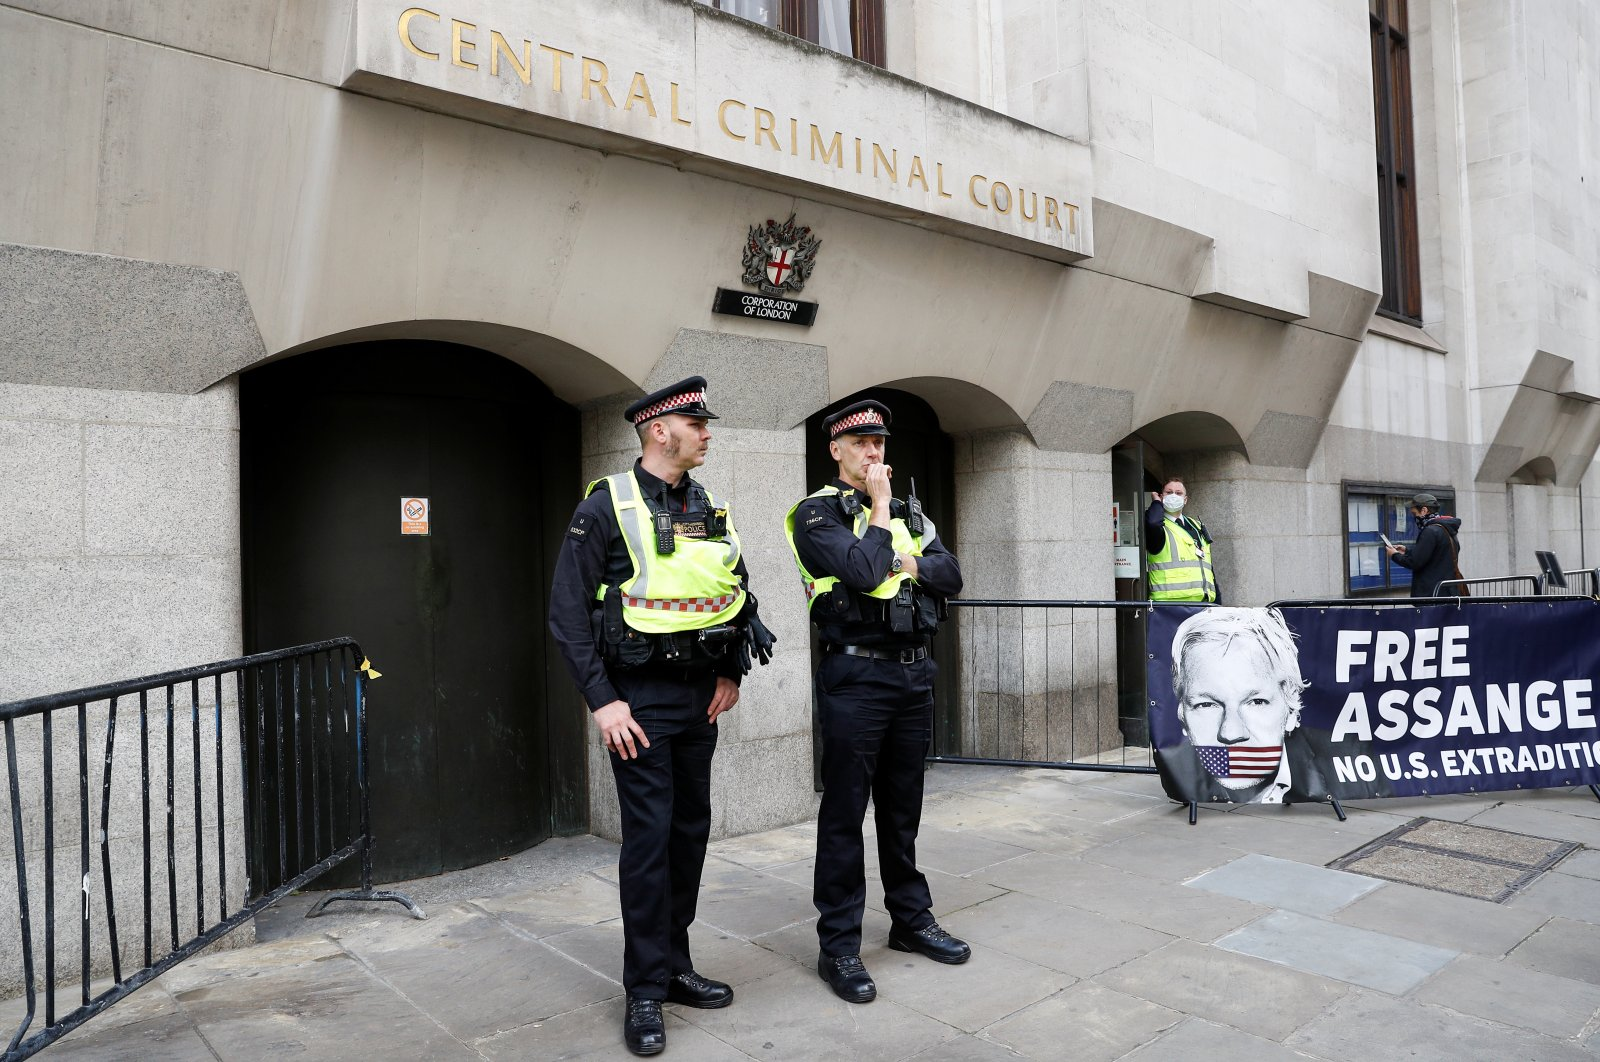 A banner in support of Julian Assange is seen outside the Old Bailey, the Central Criminal Court, London, Sept. 7, 2020. (REUTERS Photo)